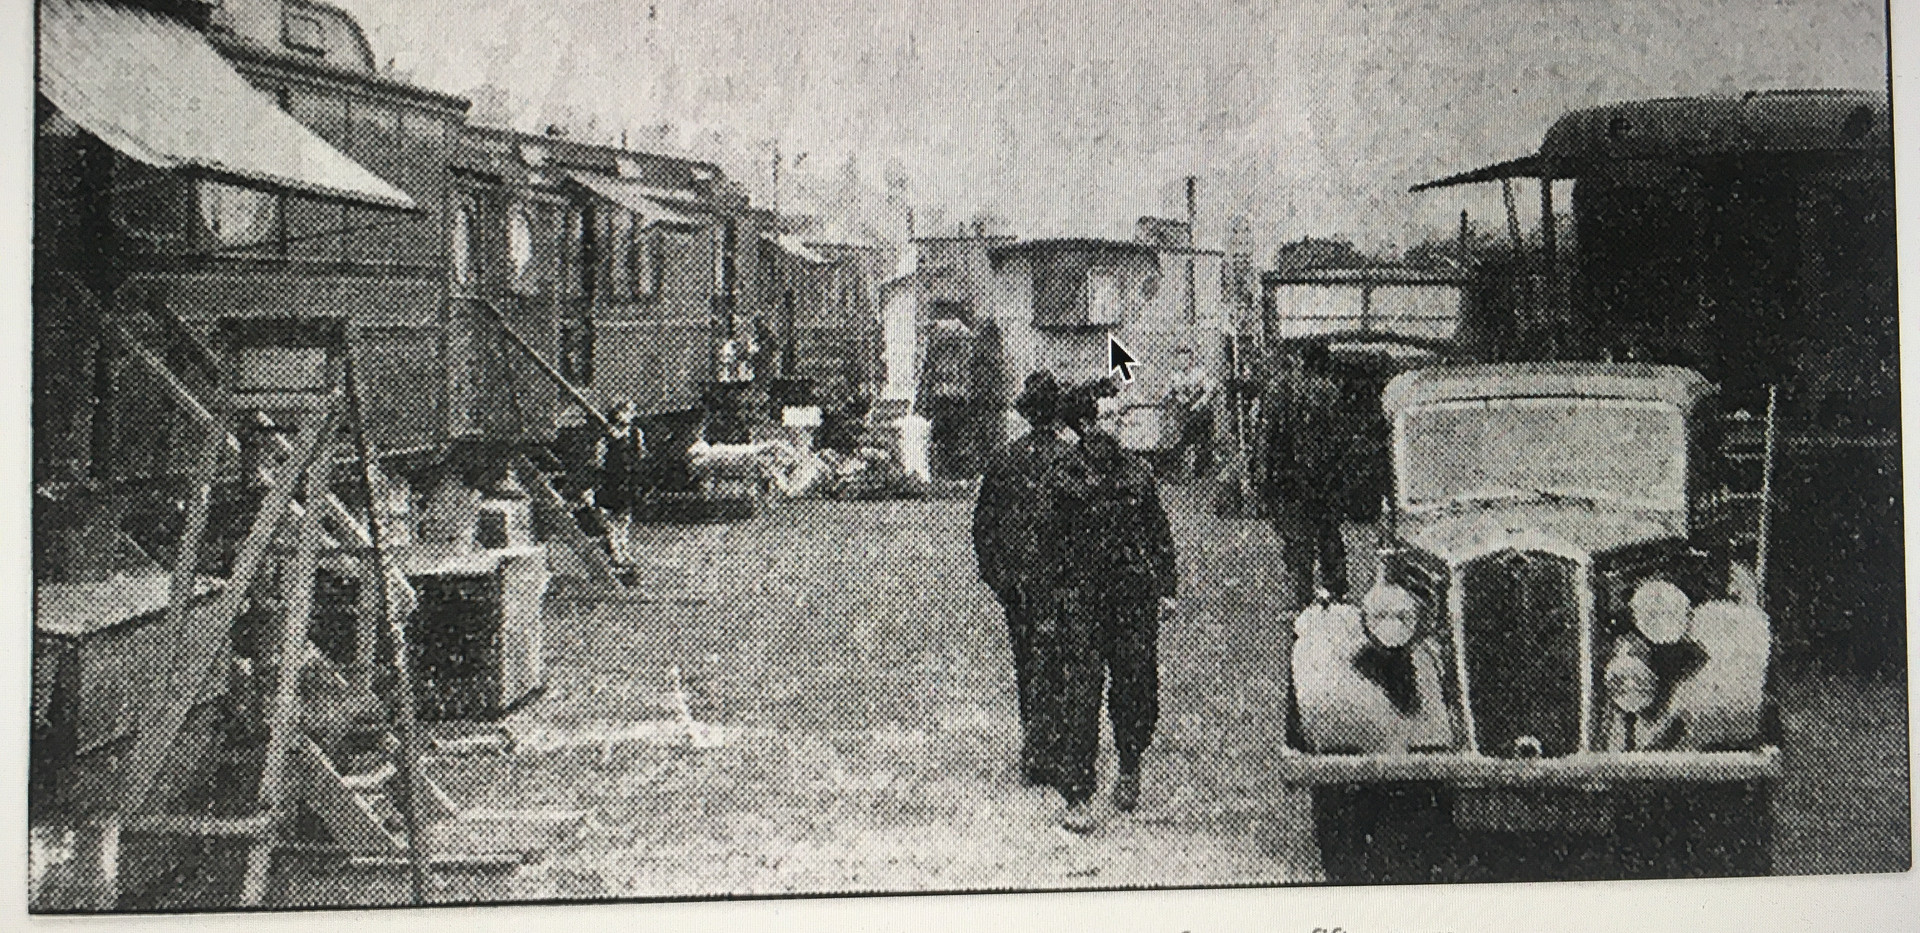 Harry Gray's fair in winter storage - is this our wagon in the background?